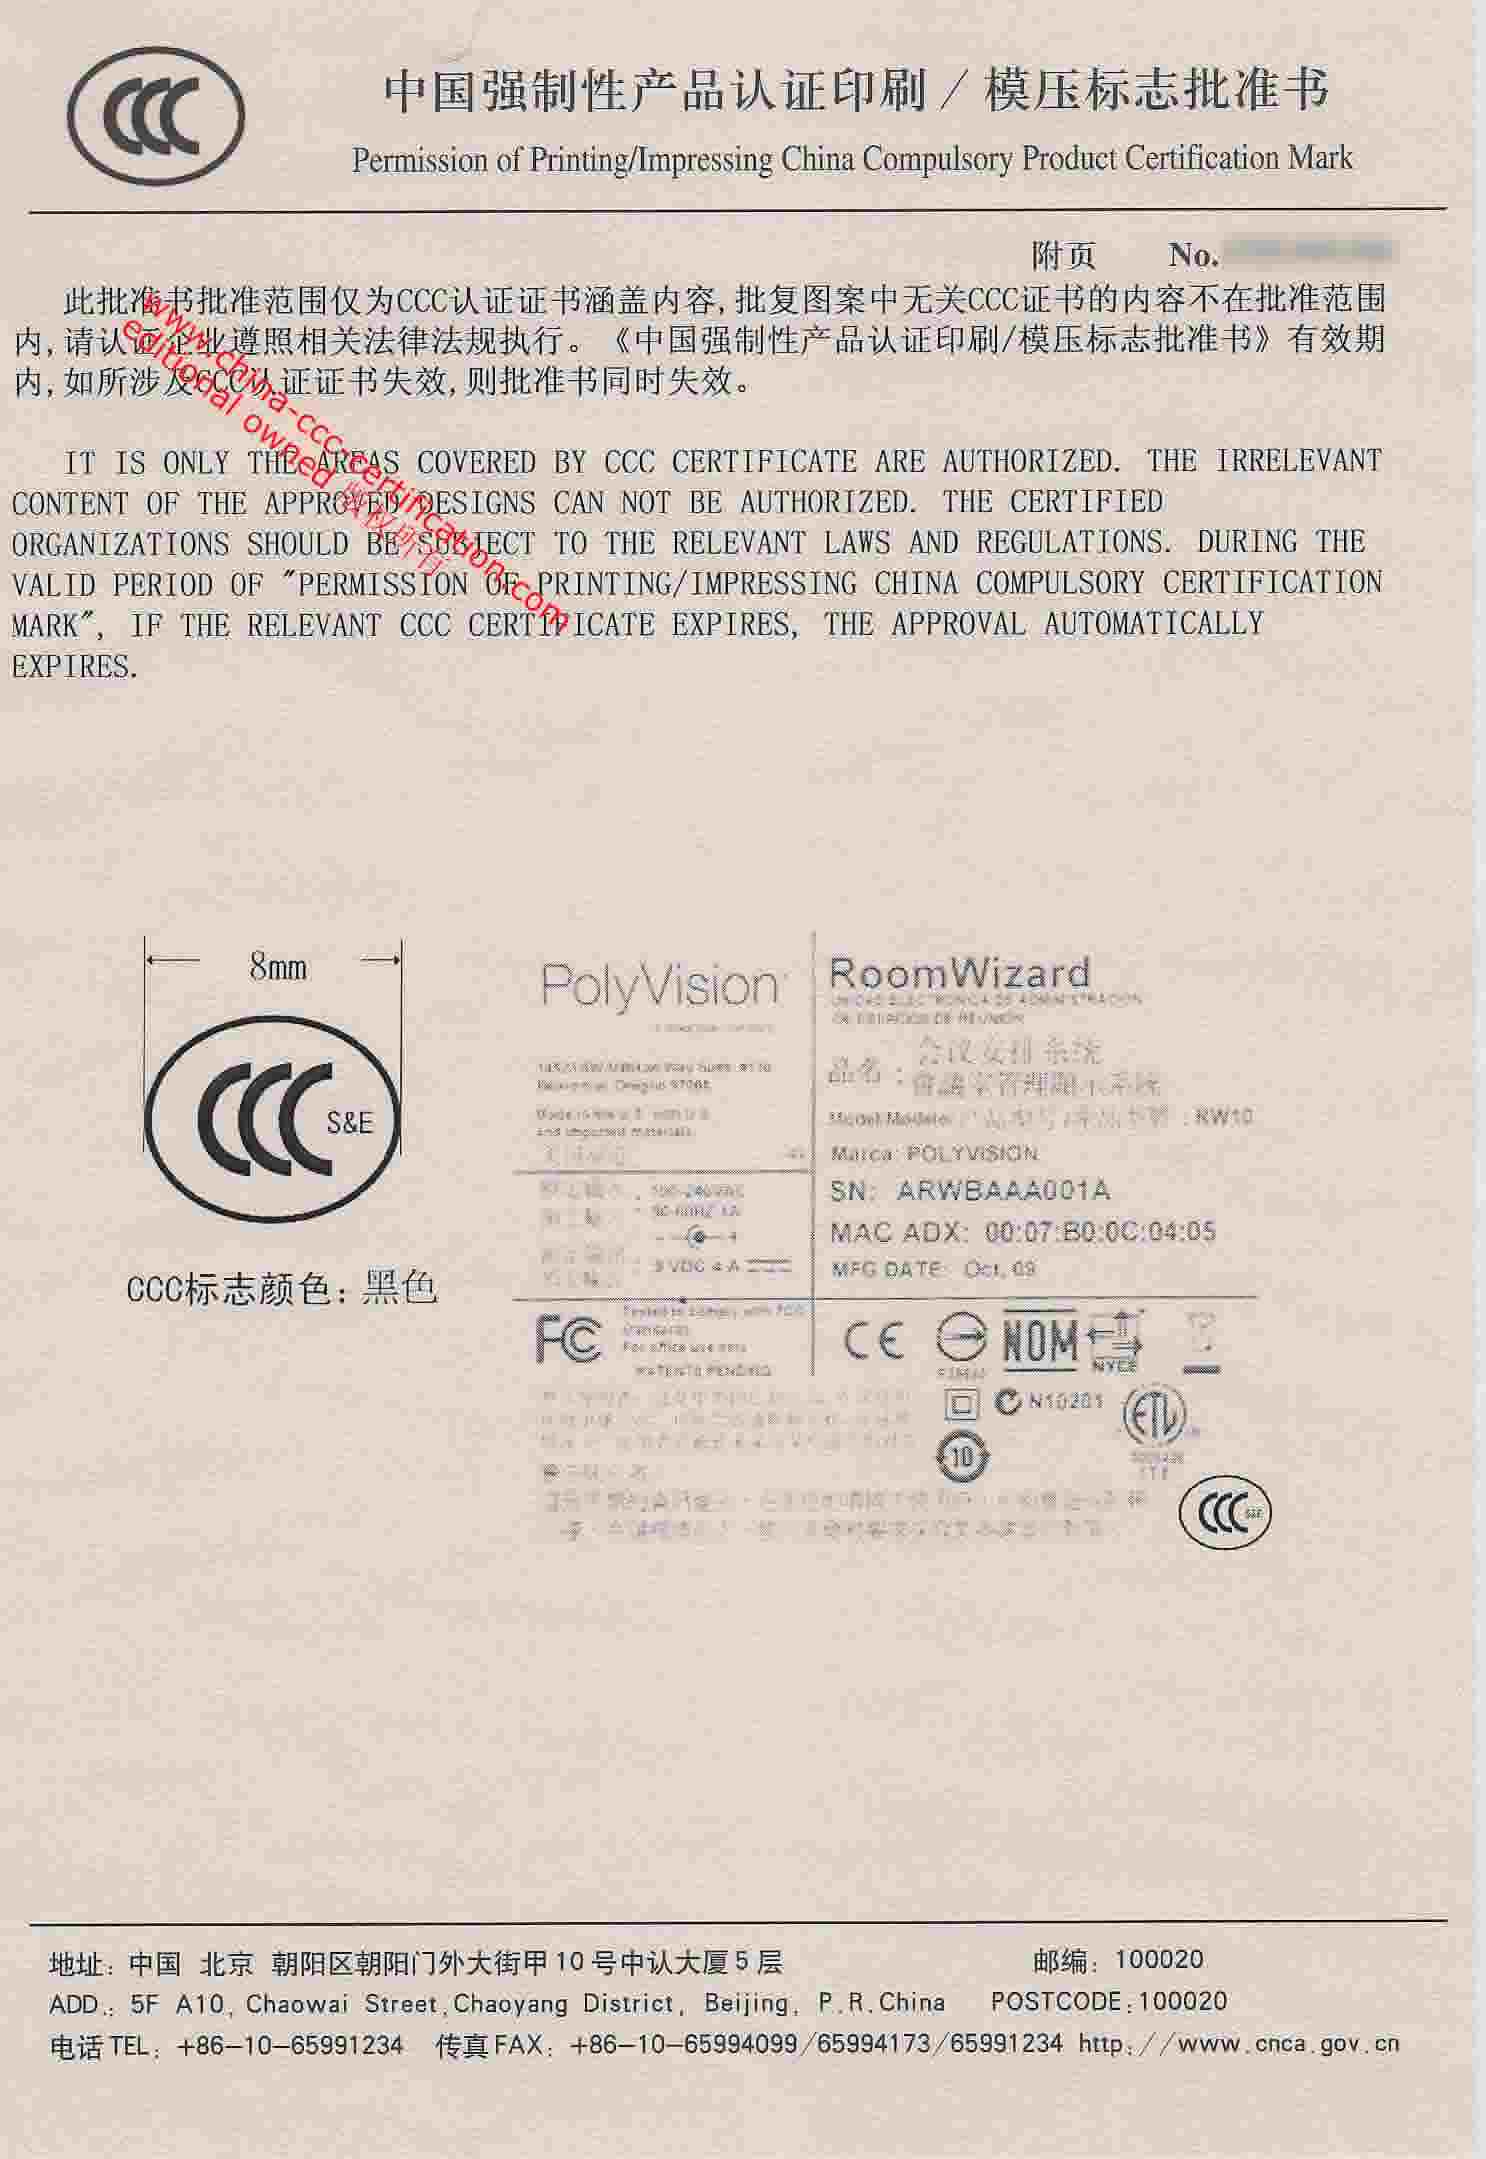 CCC-Certification-Download|China-CCC-Certification.com